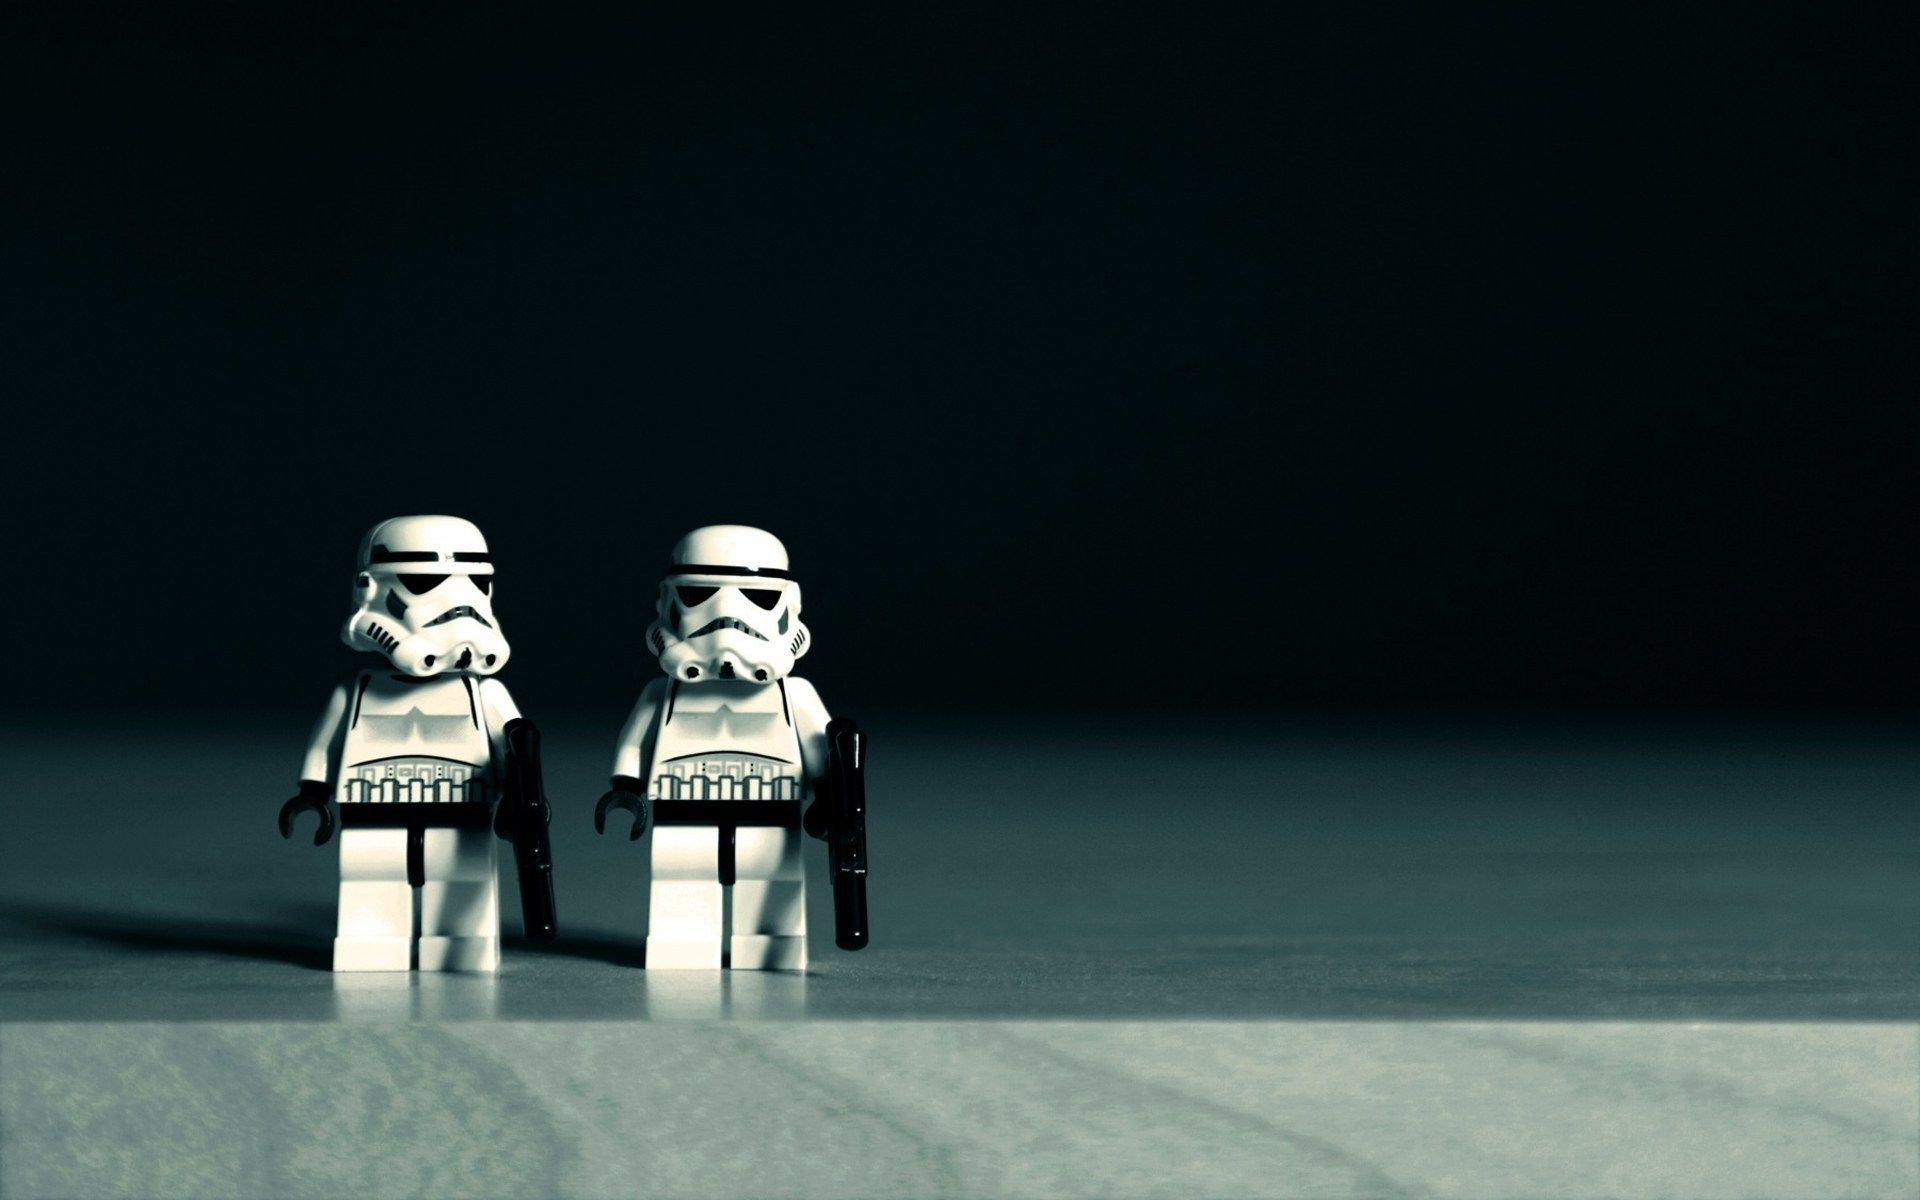 Star Wars Lego Wallpaper HD